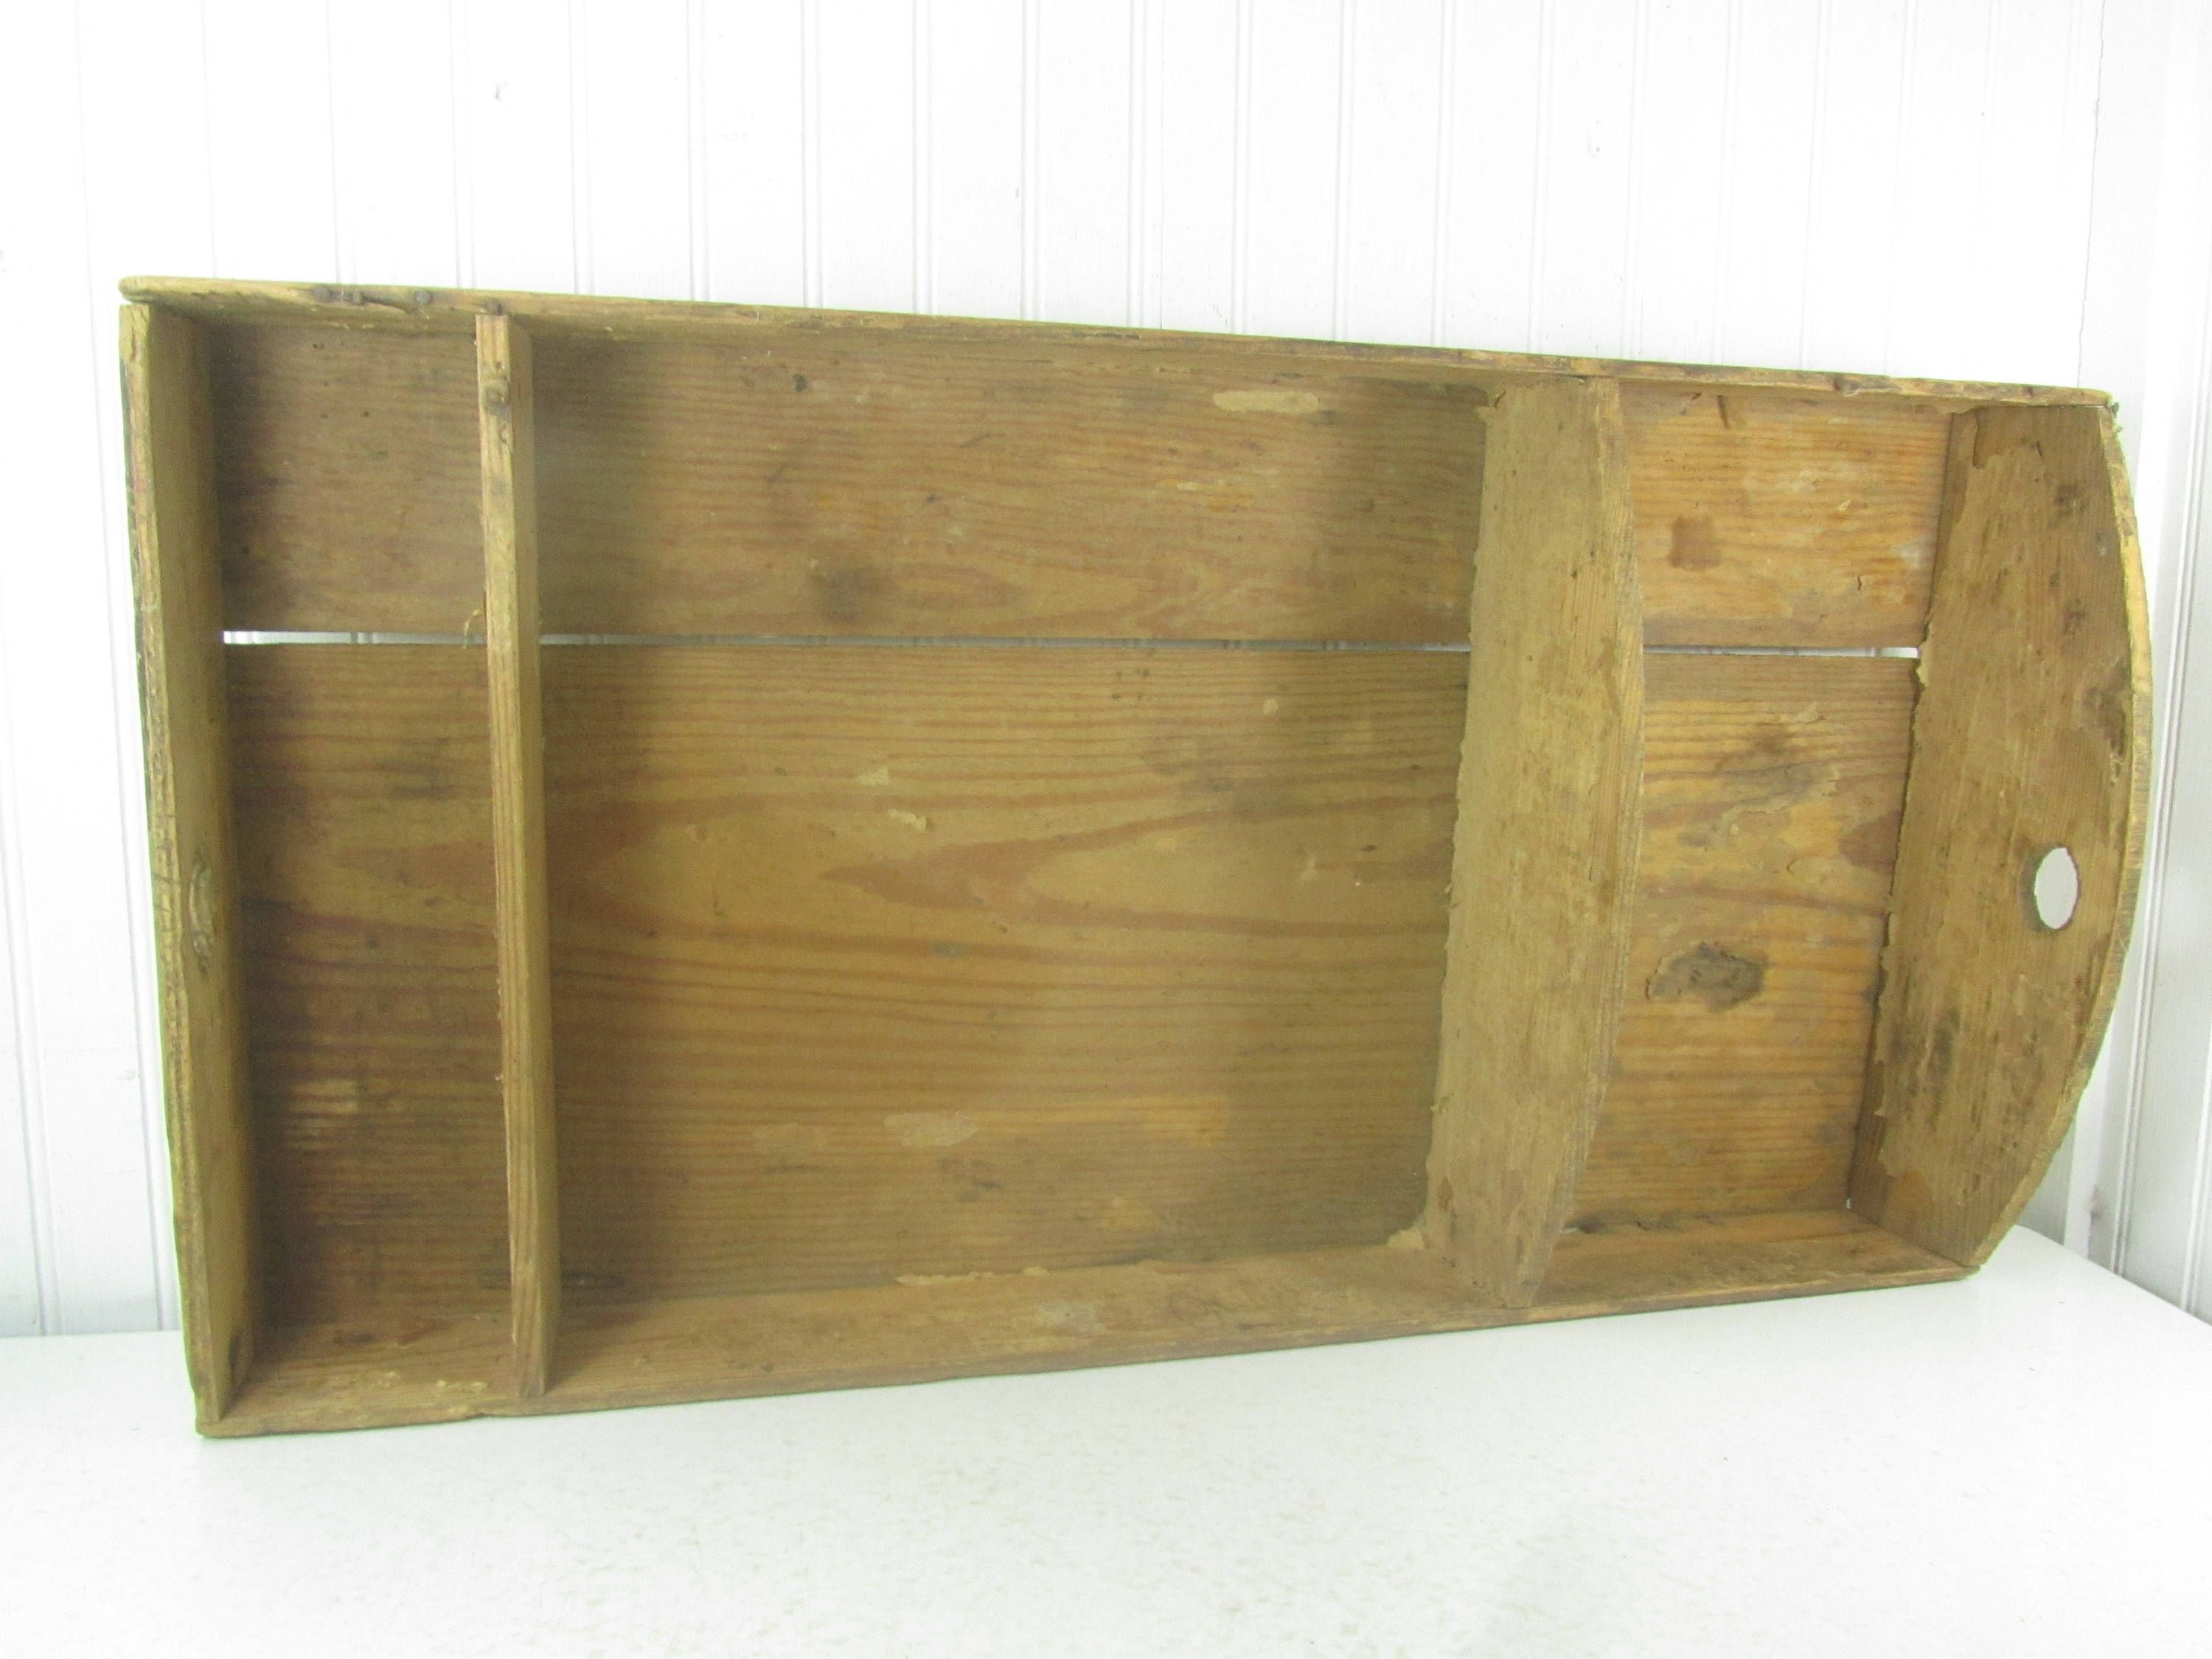 Antique Steamer Trunk Tray, Wood Tray, Farmhouse Decor By Karenschicnshabby